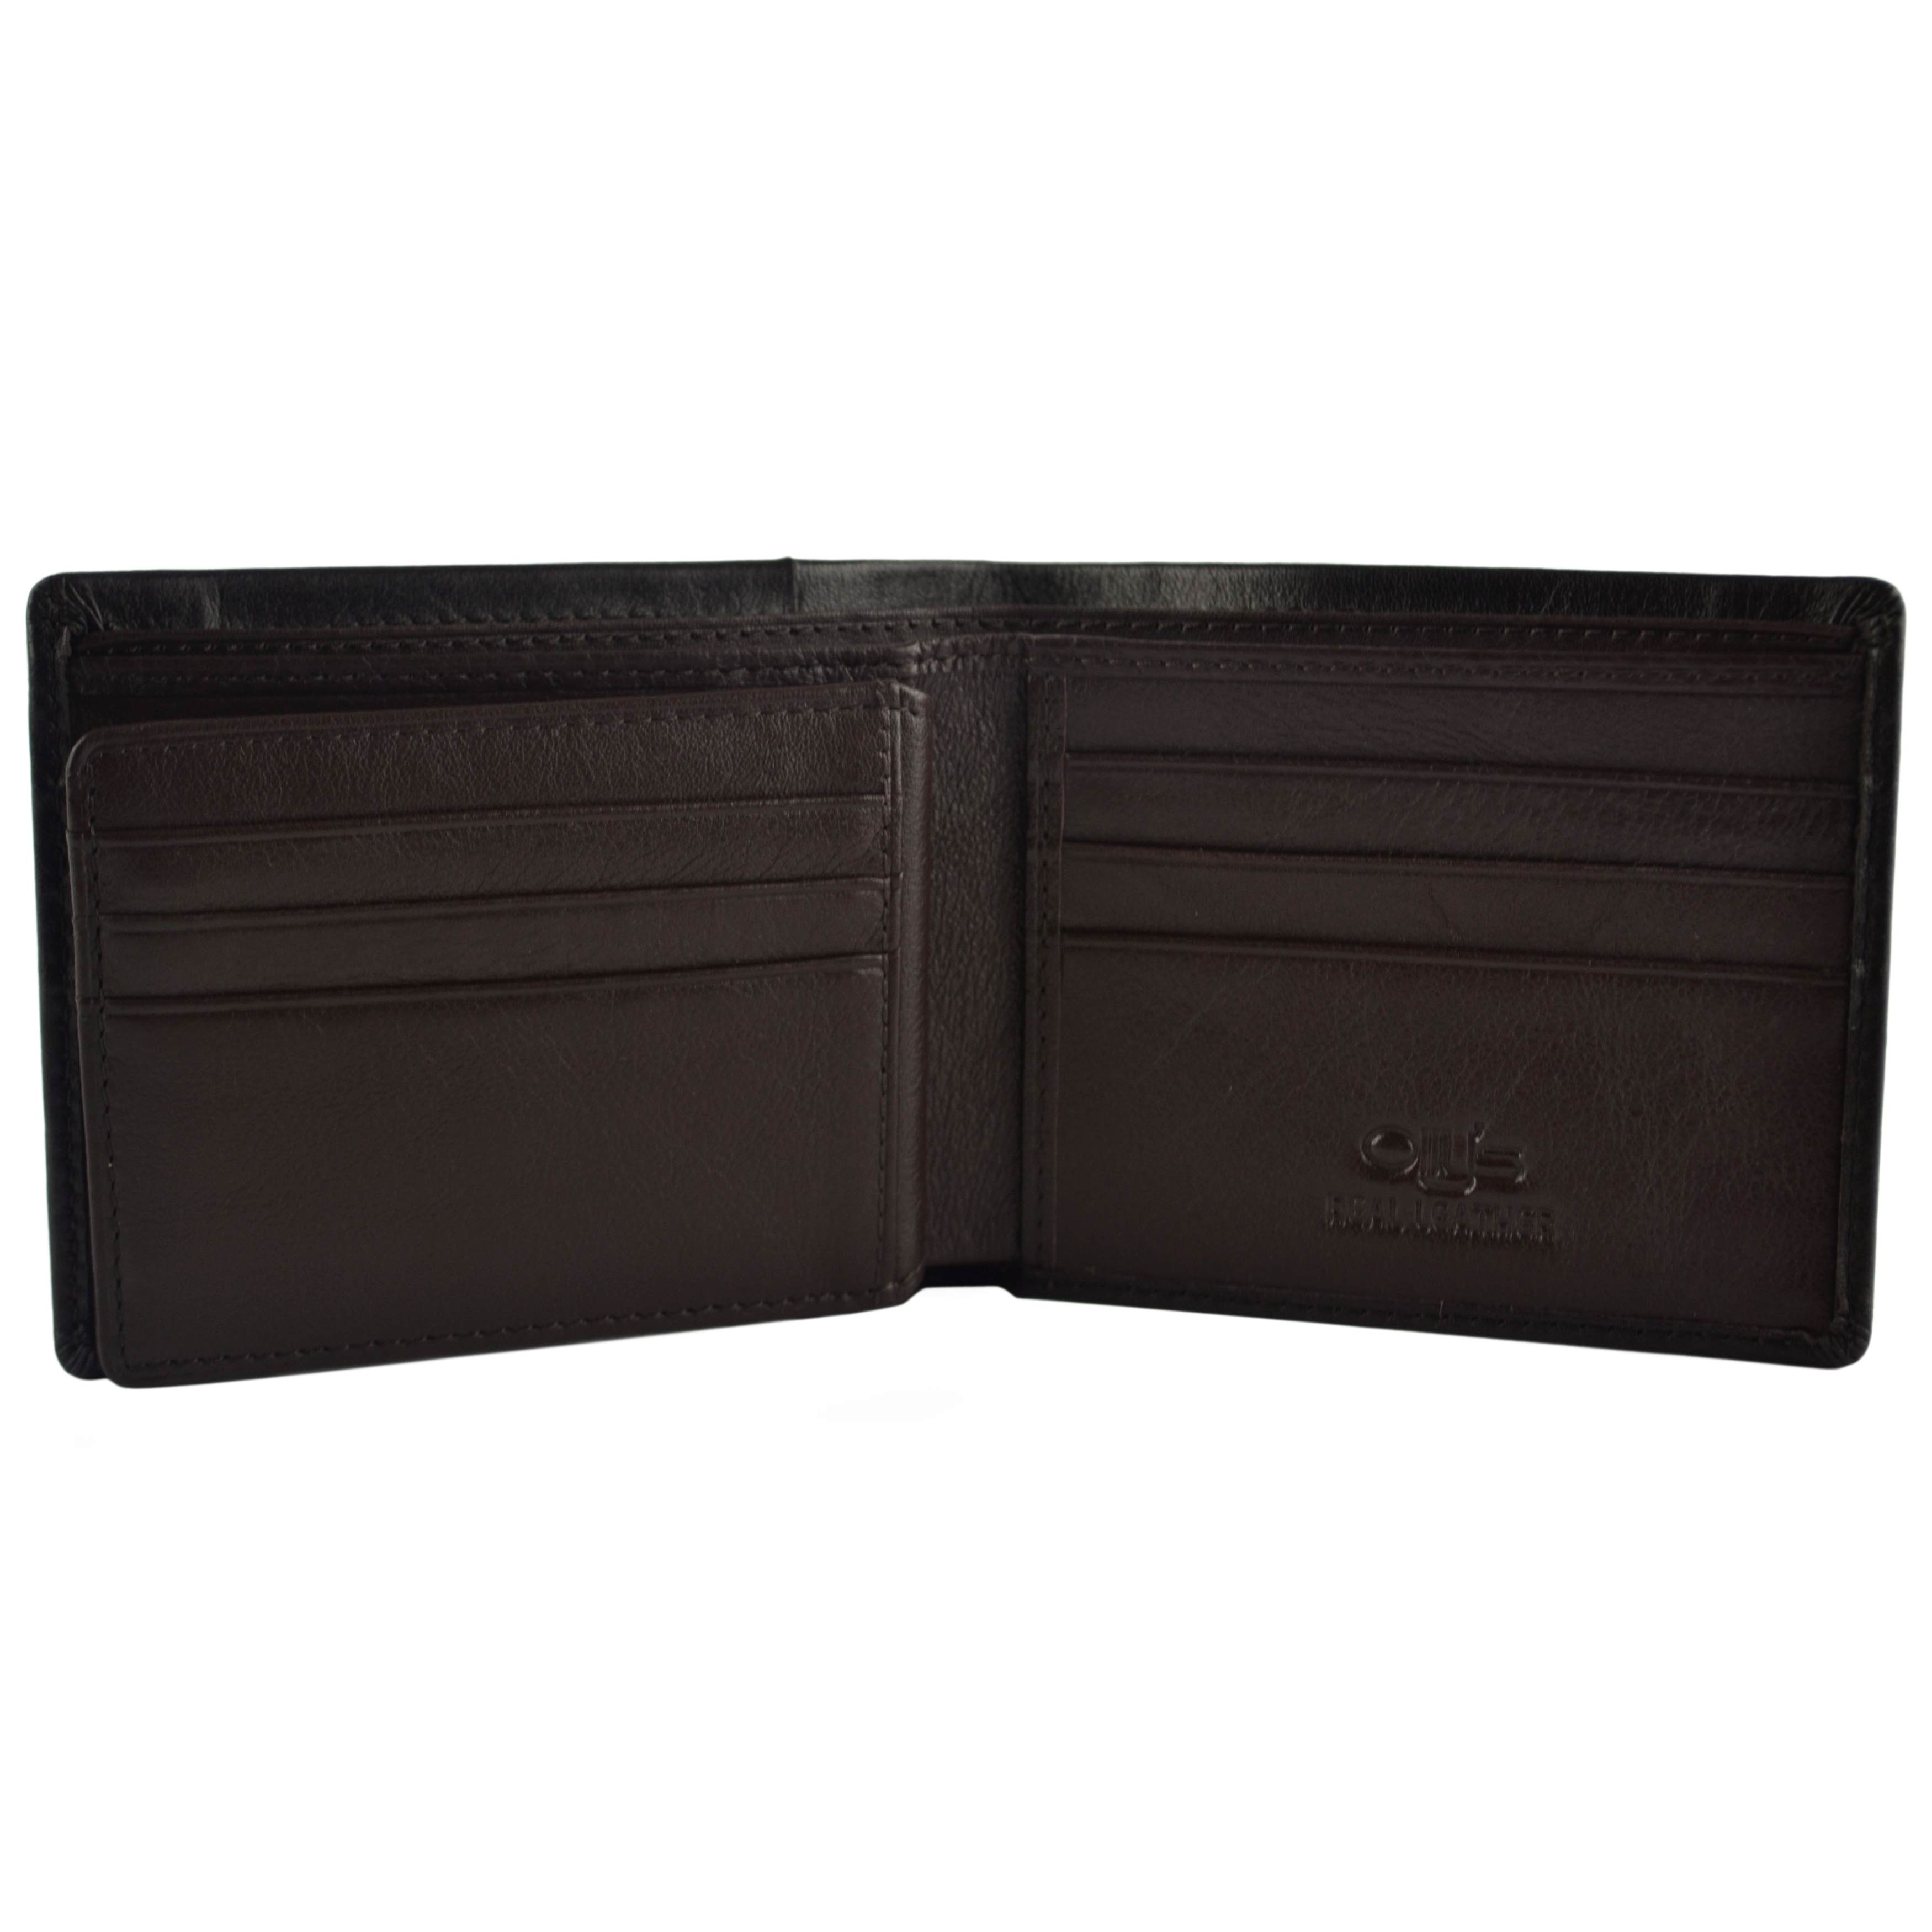 thumbnail 9 - Mens-Fine-Grain-Classic-Leather-Wallet-by-Olly-039-s-Wilson-Collection-Gift-Box